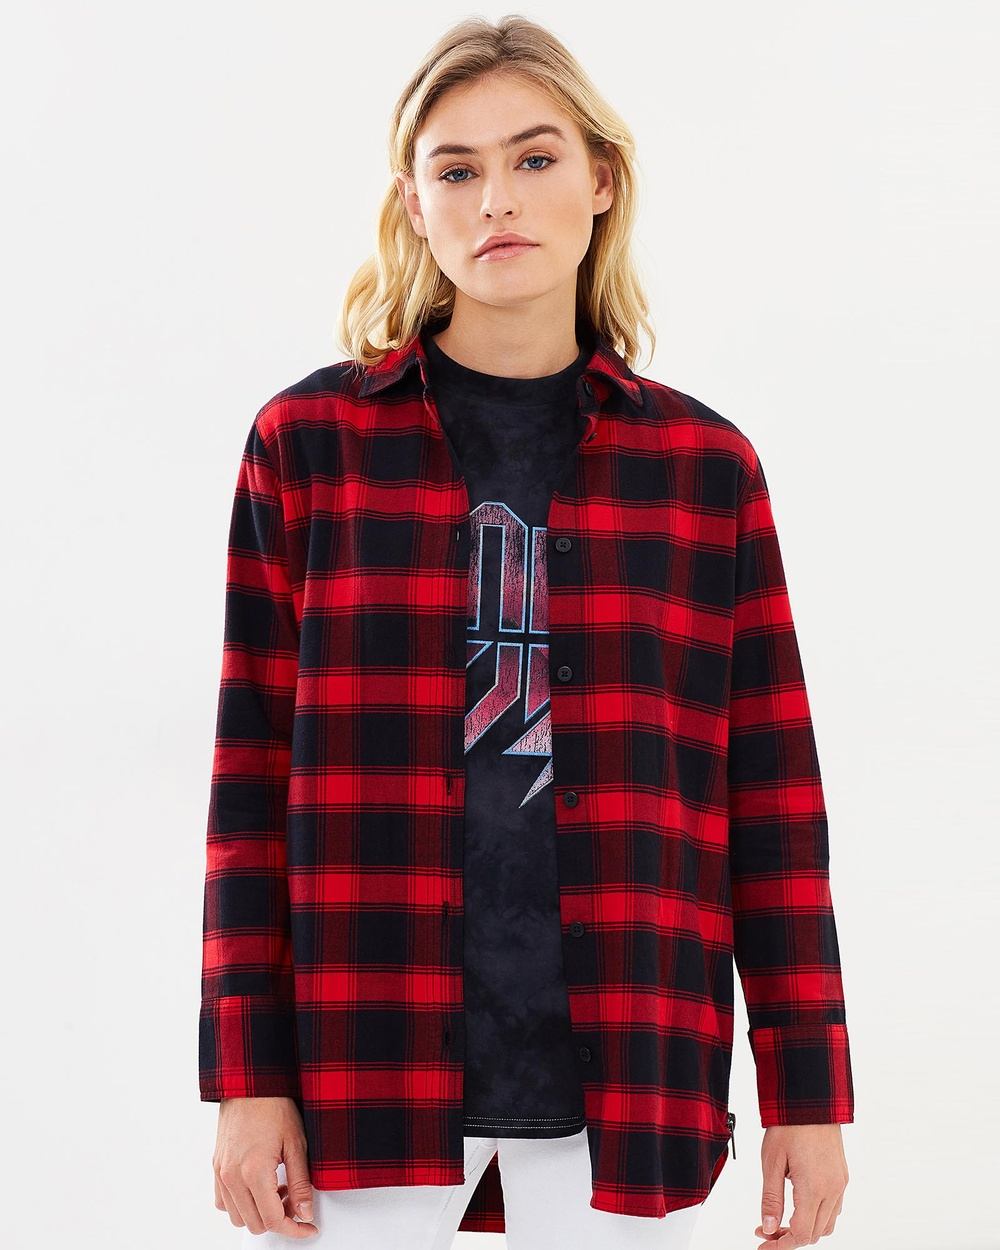 Nana Judy Kylie Shirt Tops Red Plaid Kylie Shirt